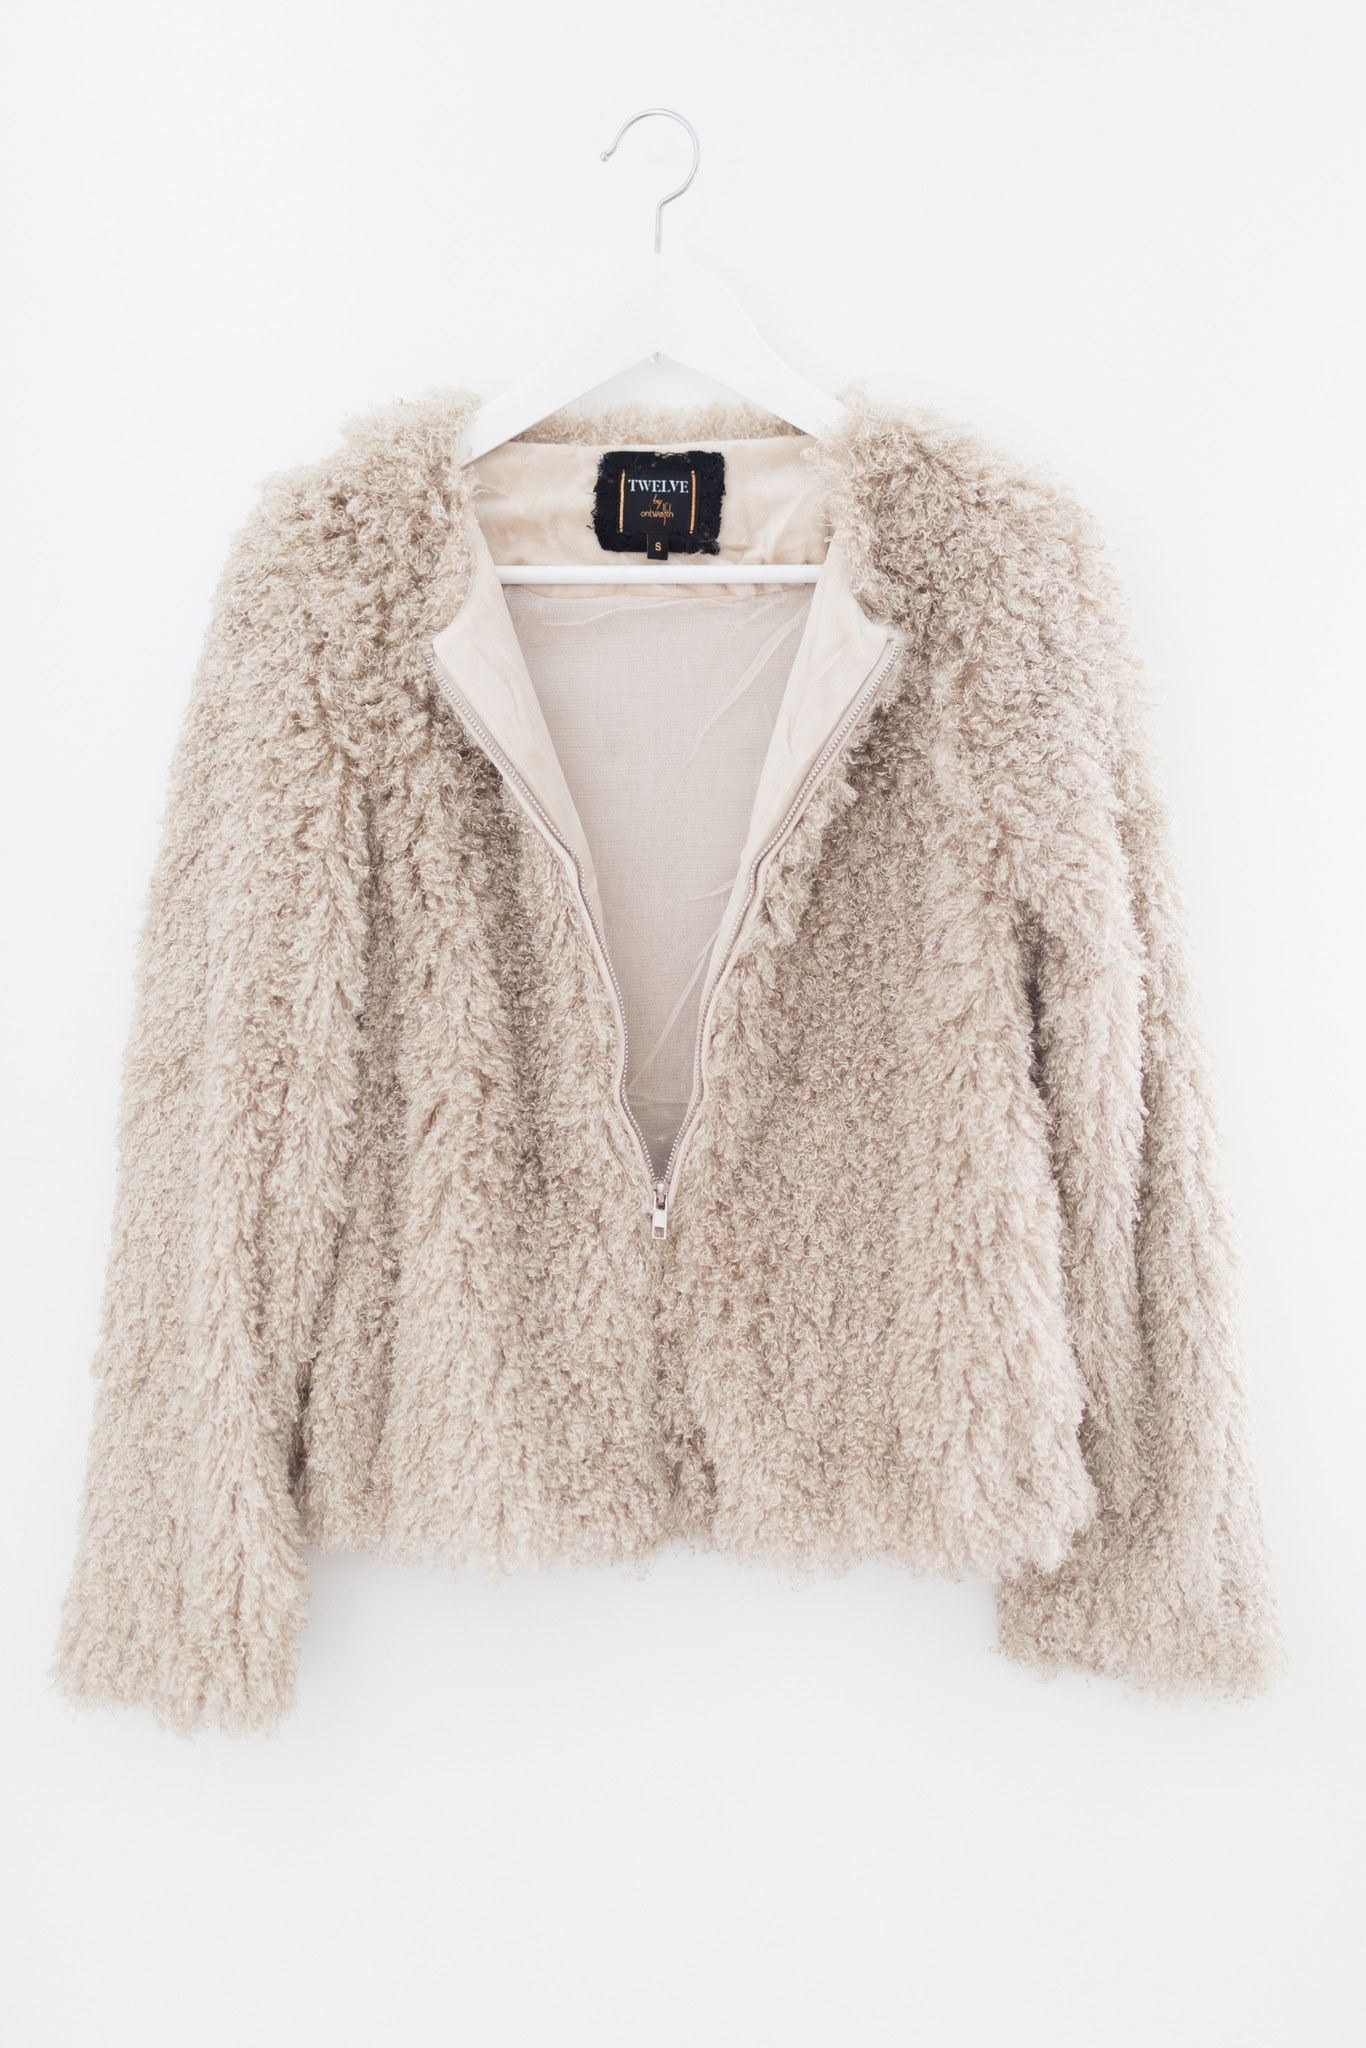 229cba94ba33 Pale blush super soft faux fur shaggy jacket - Zipper front - Mesh lining -  Size small length measures approx. 21